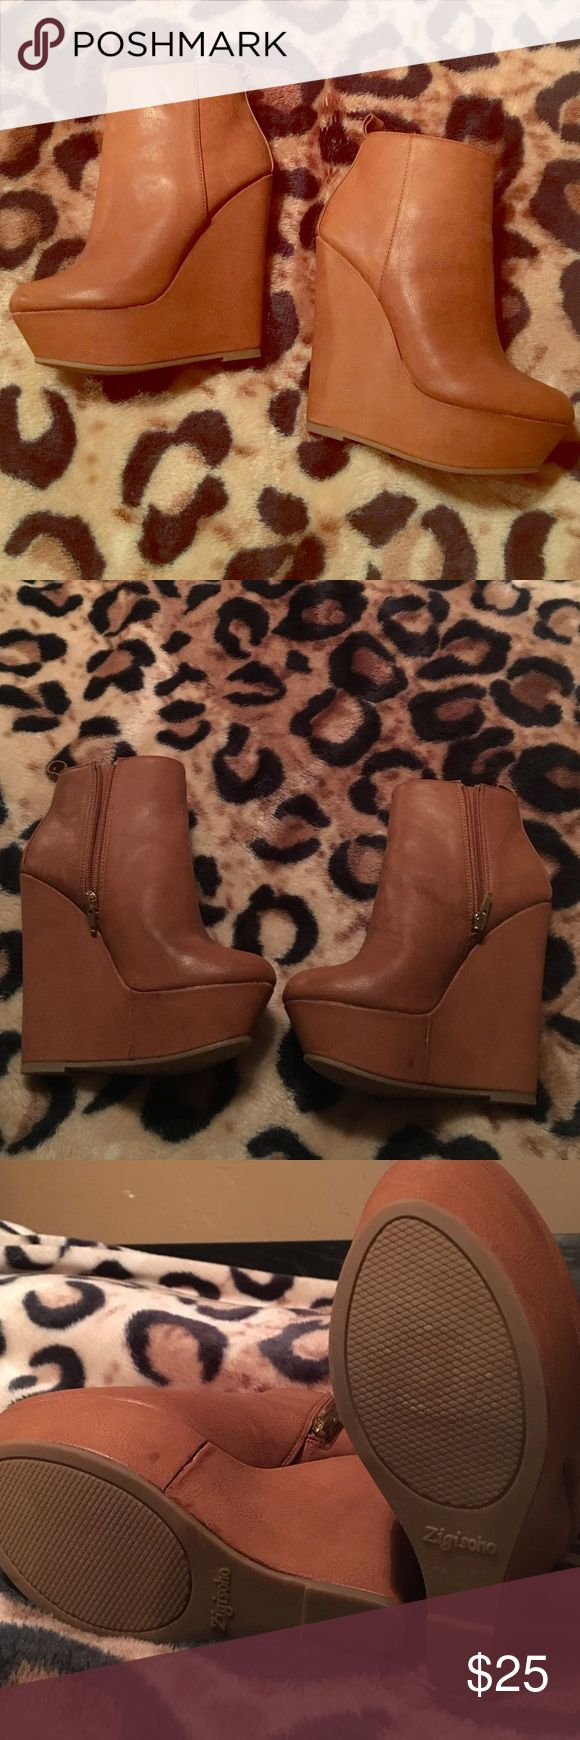 Brown wedge booties Brand new camel booties. Zip up sides. Purchased from DSW and never worn. Zigi Soho Shoes Ankle Boots & Booties